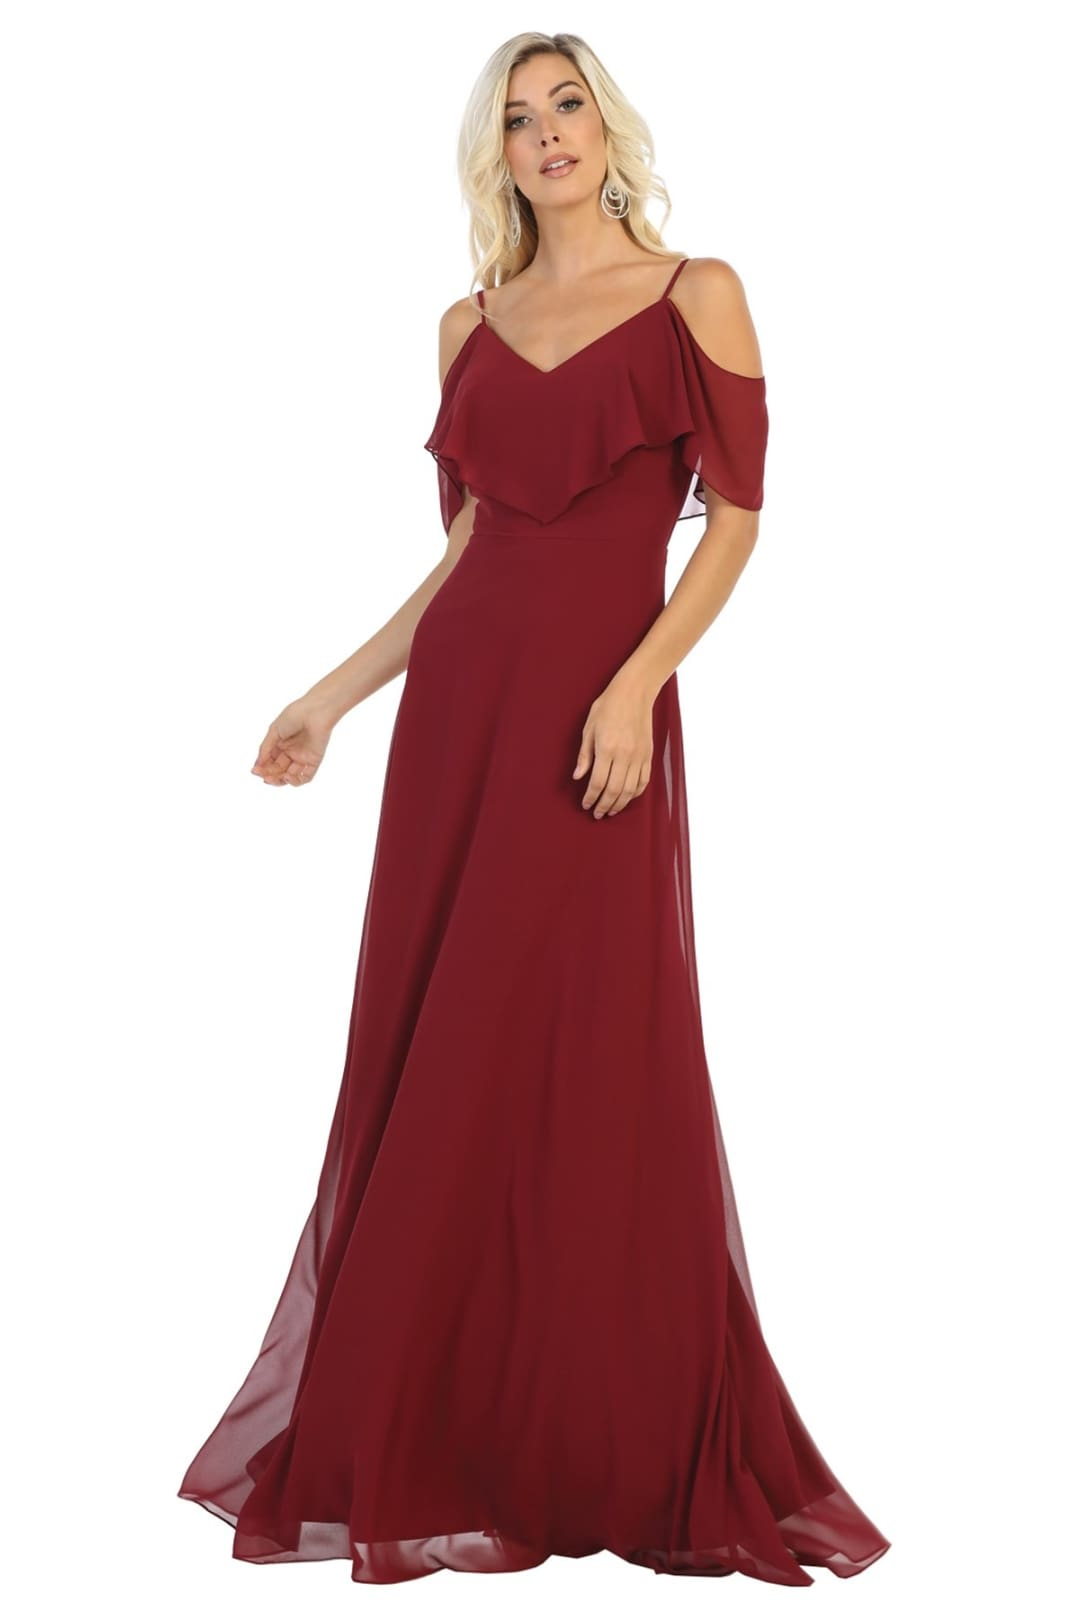 Simple & Elegant Dress - Burgundy / 4